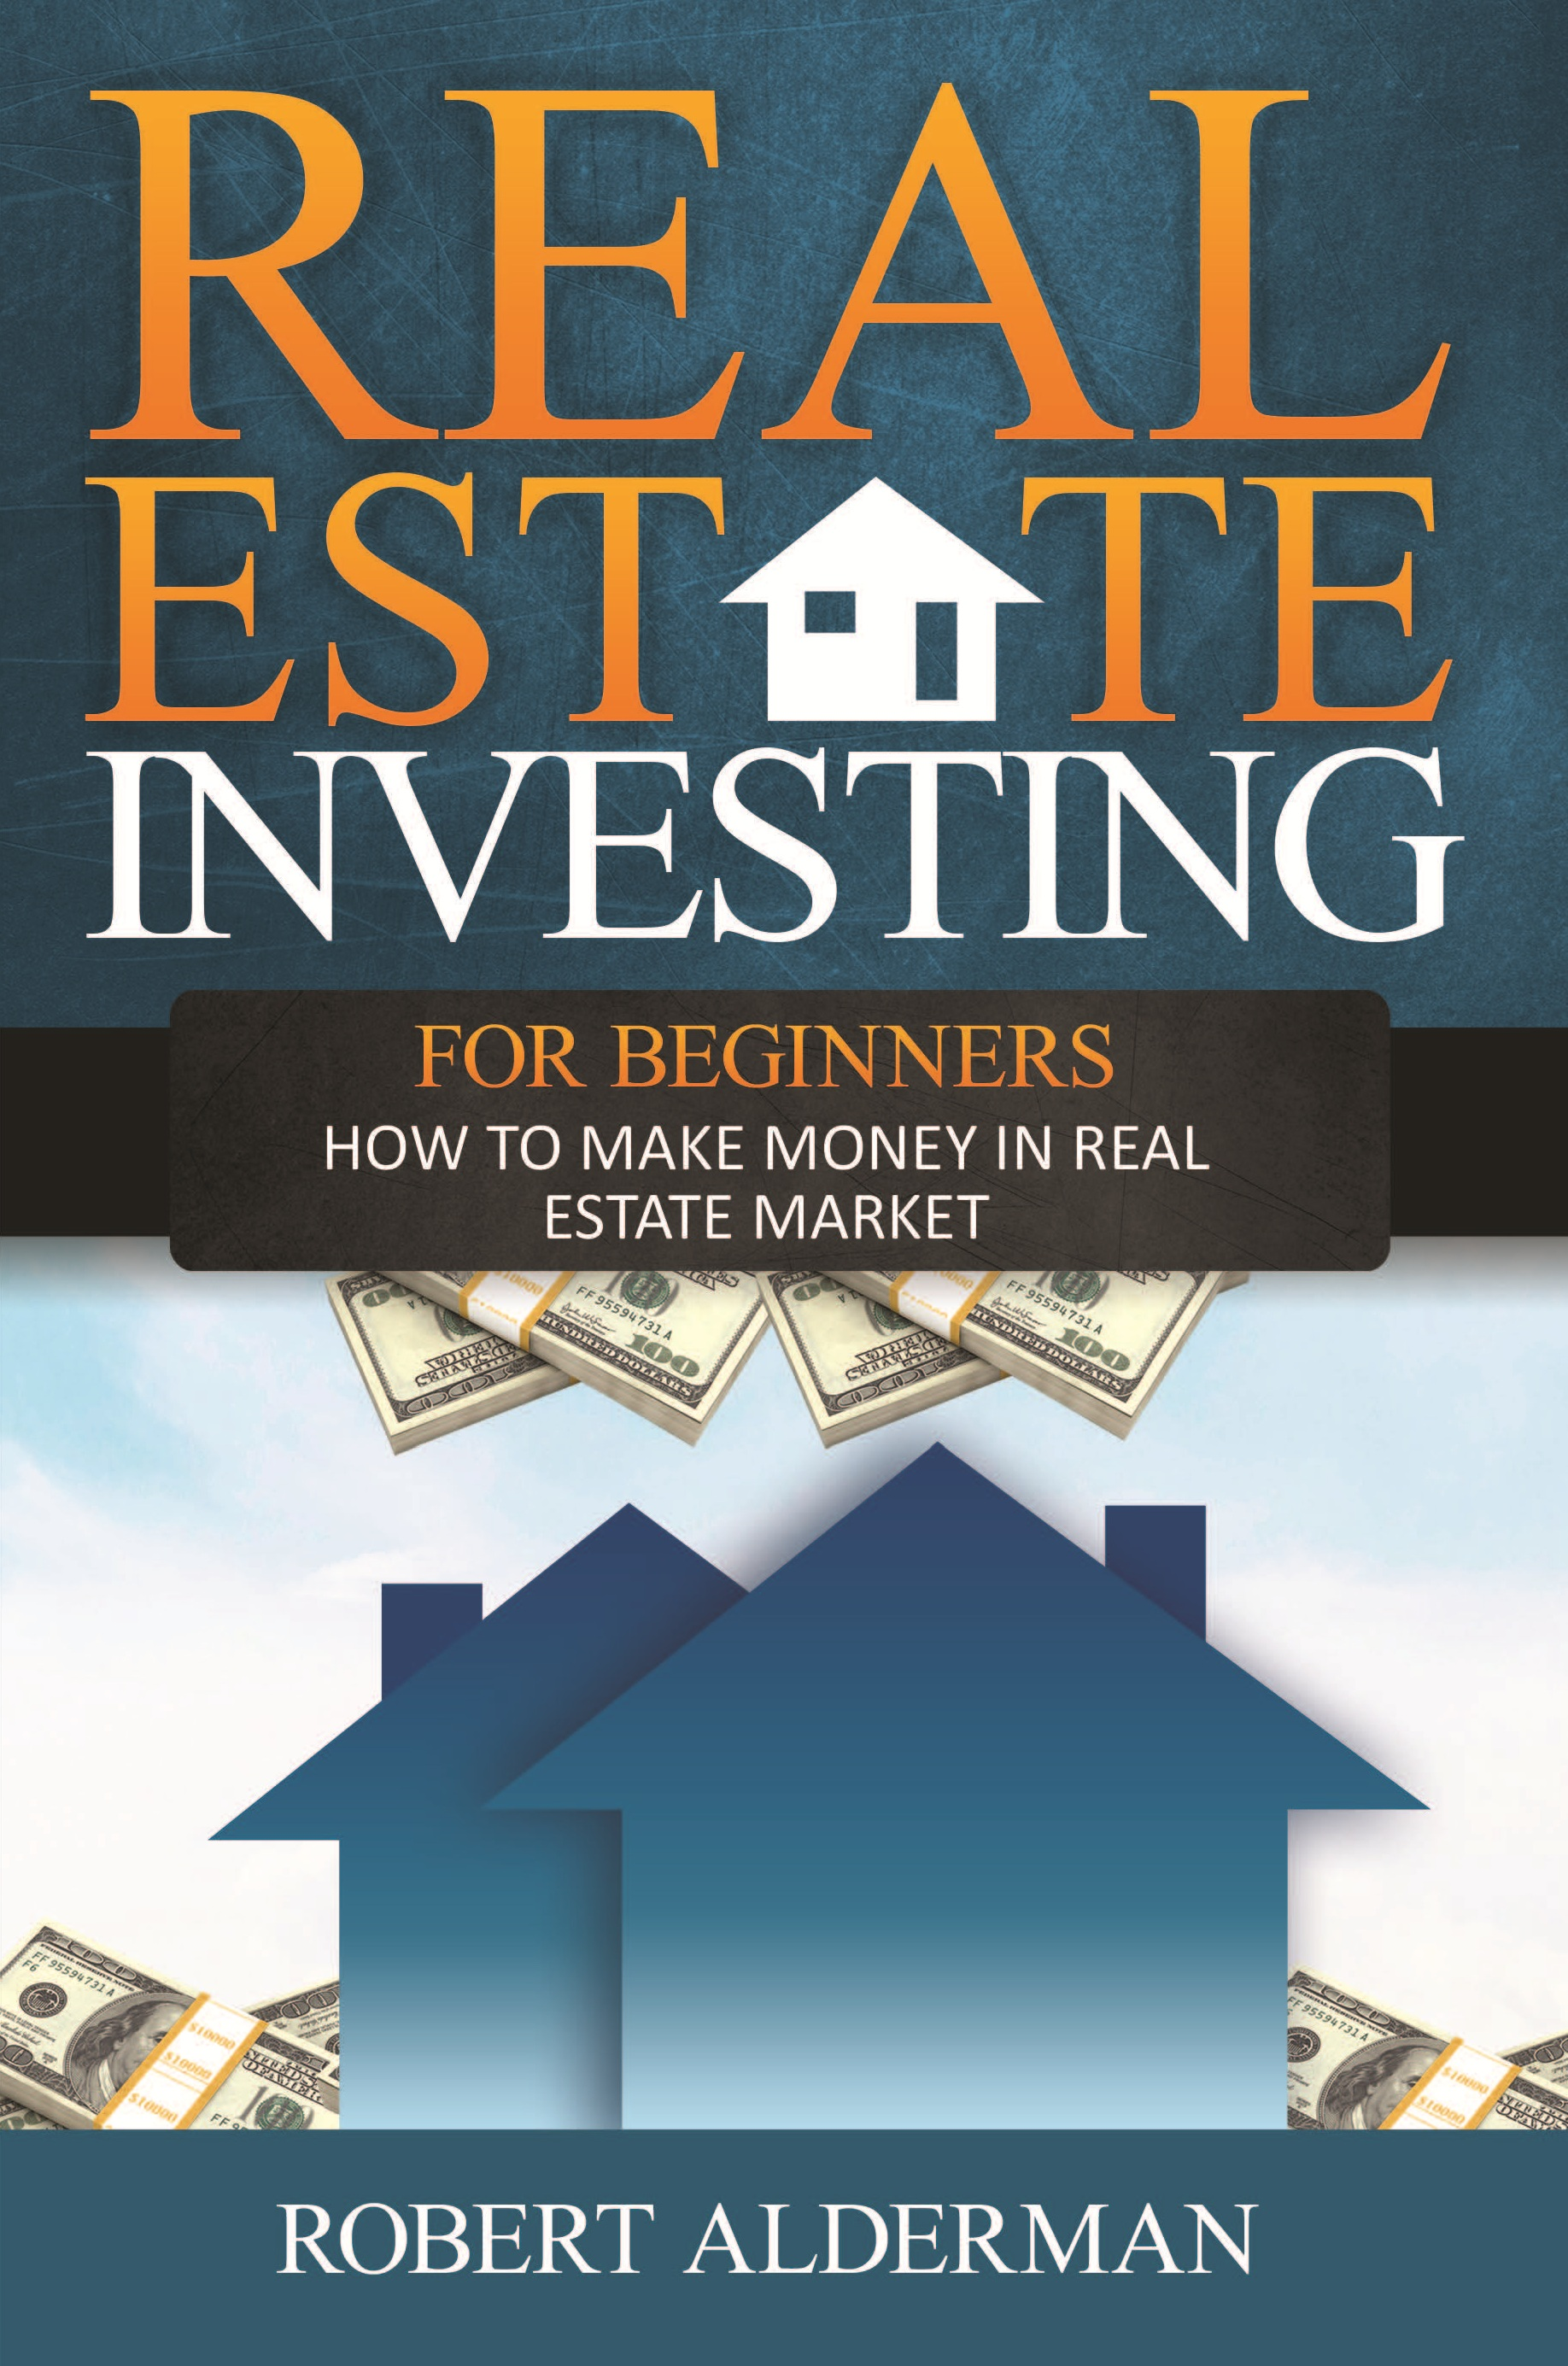 Frequent Real Estate Investment Questions